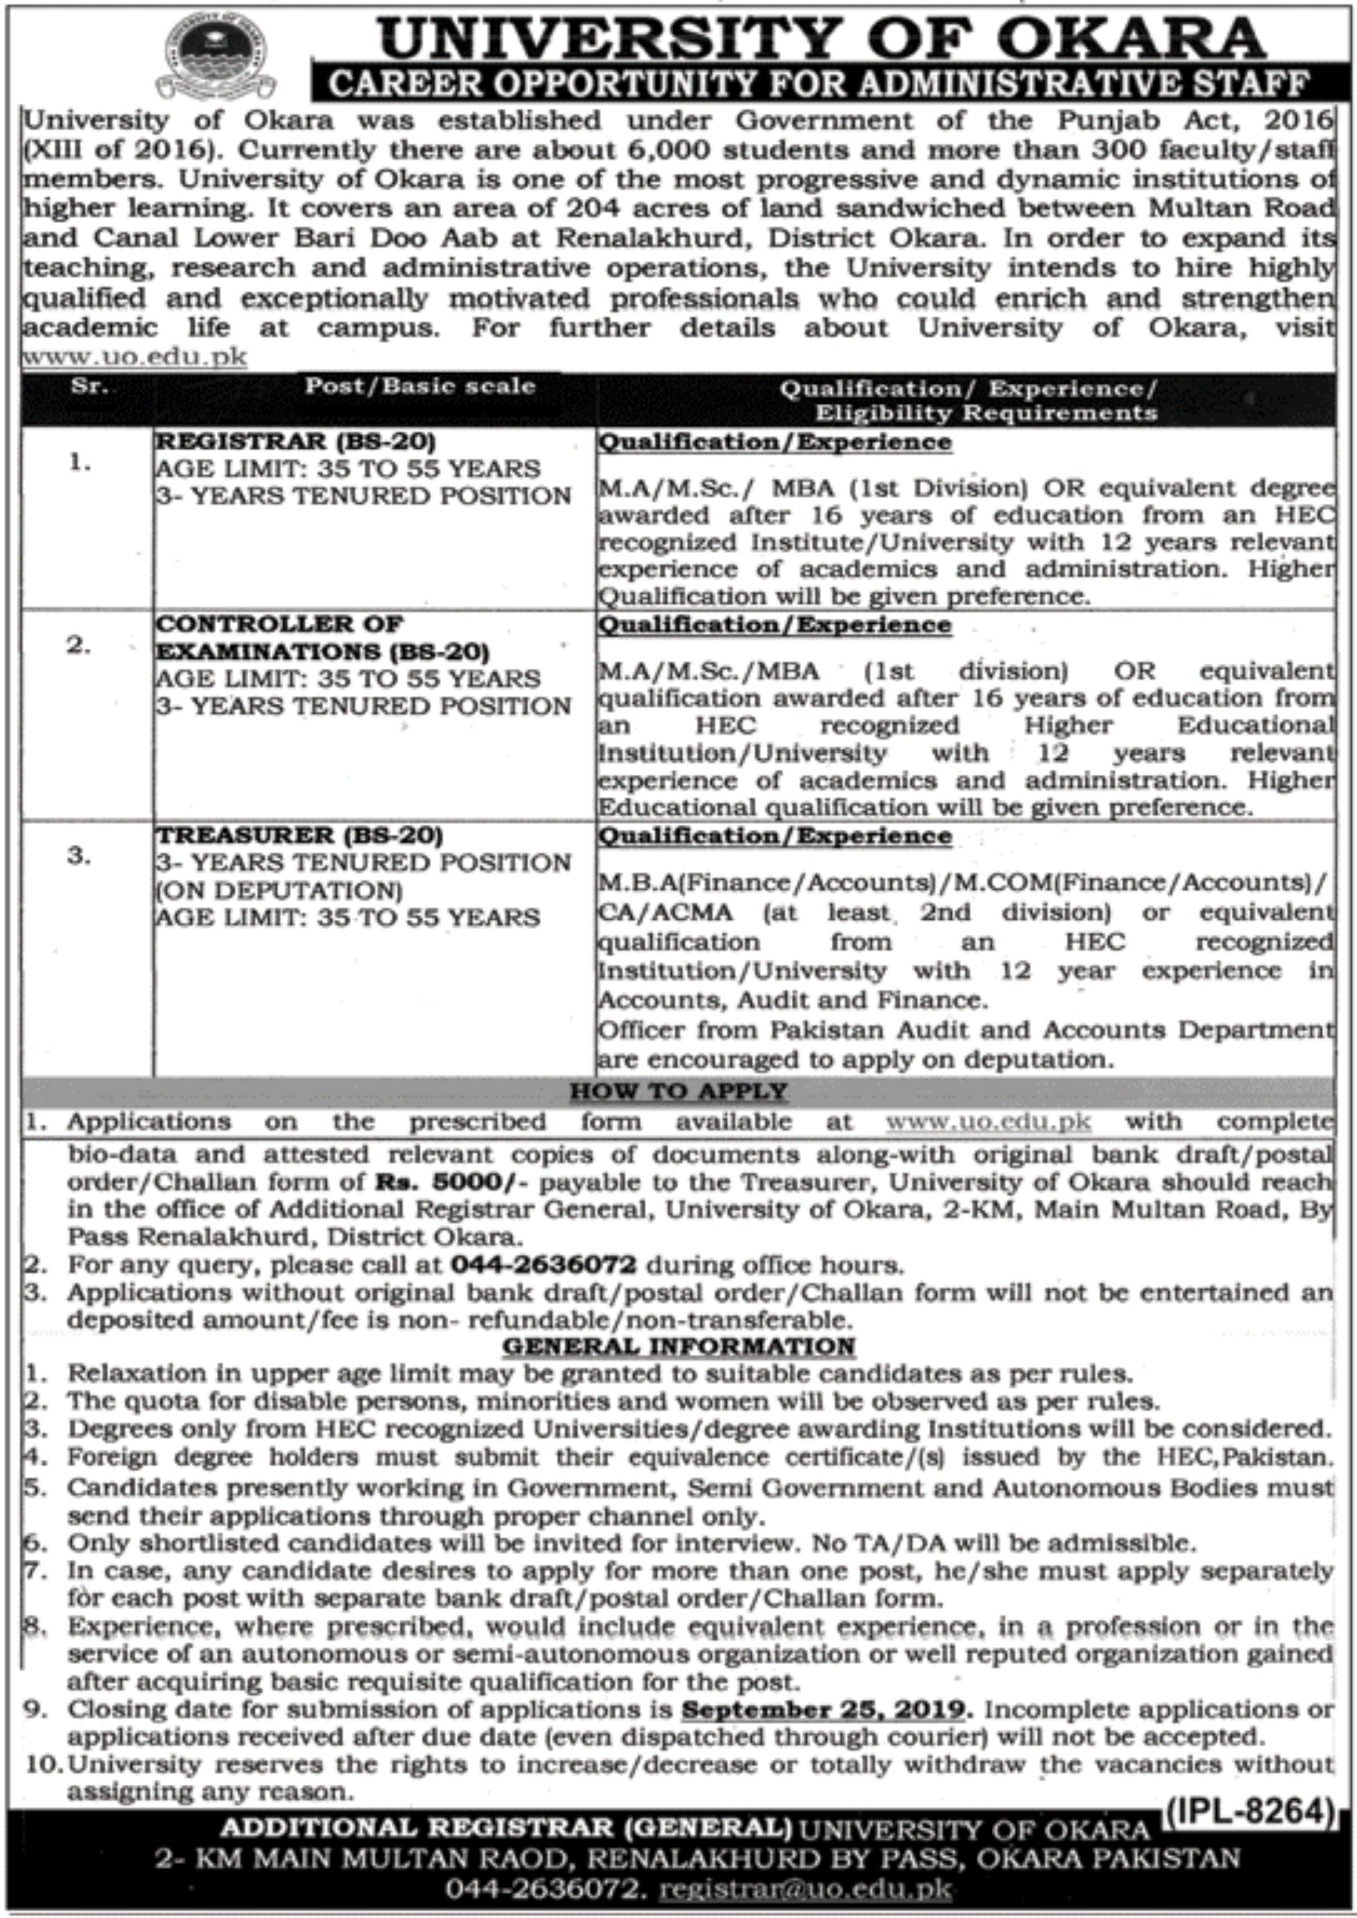 University of Okara Jobs 2019 Application Form